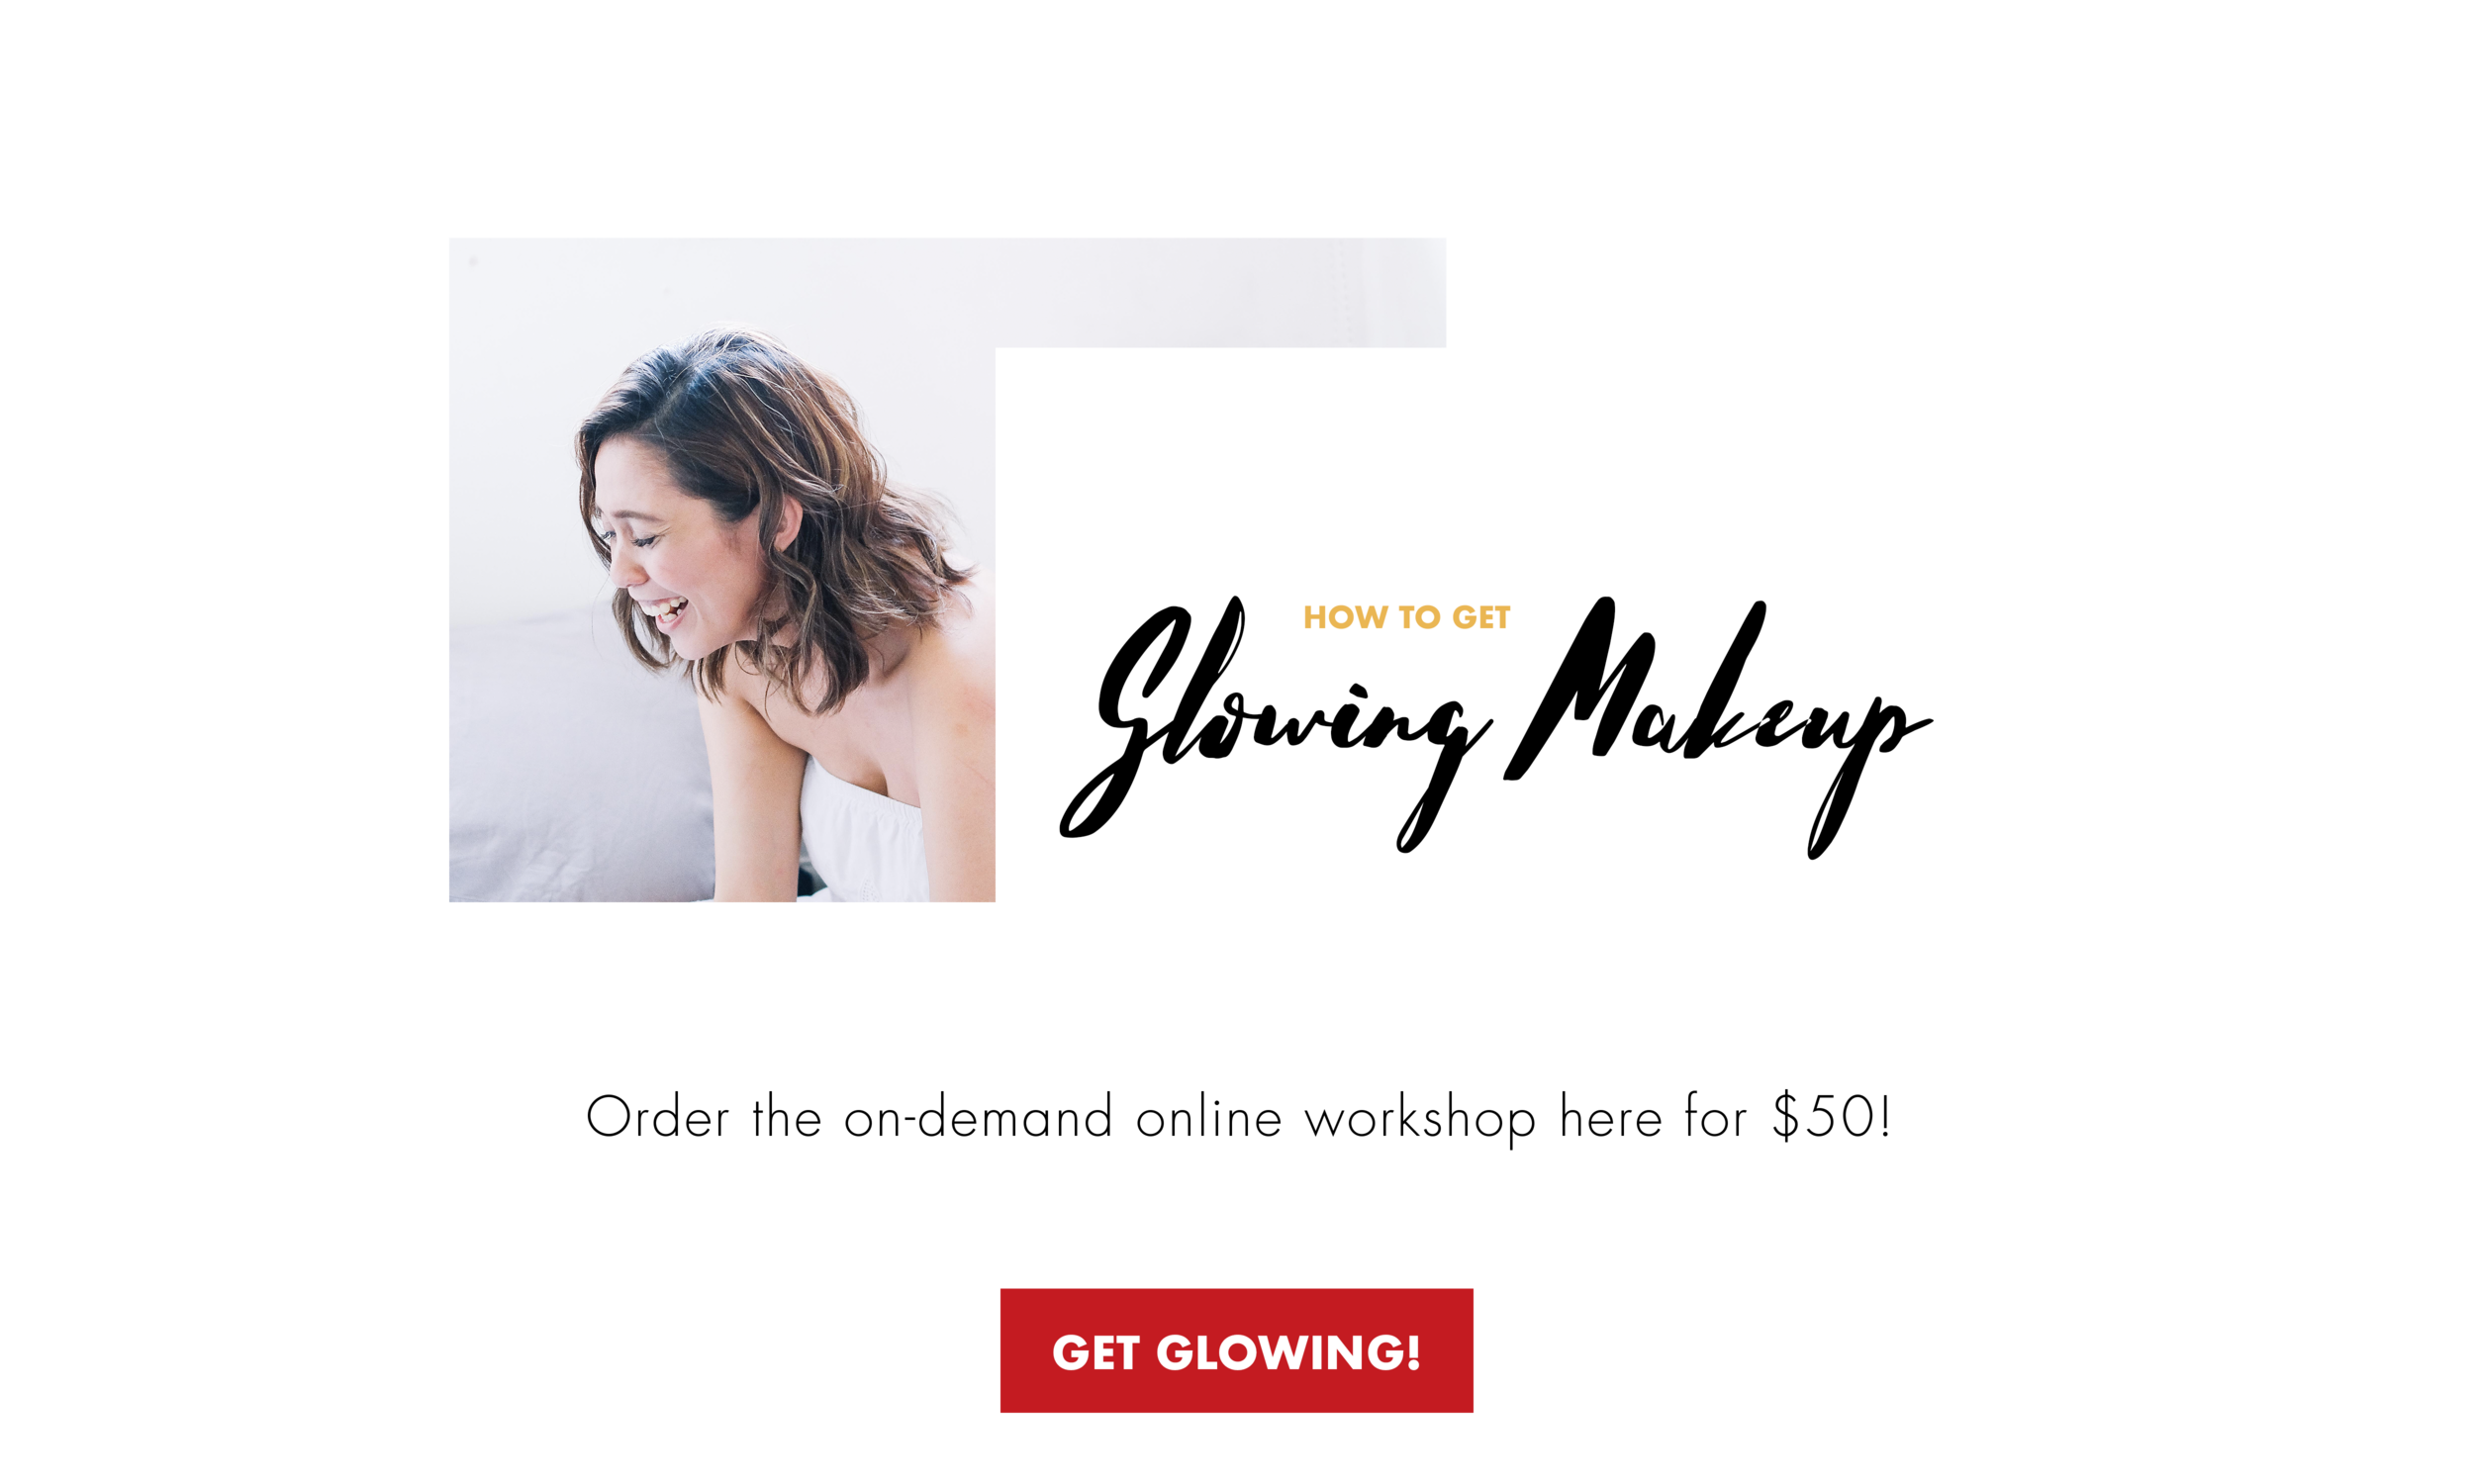 Jasmine - How to Get Glowing Makeup Header 3.png